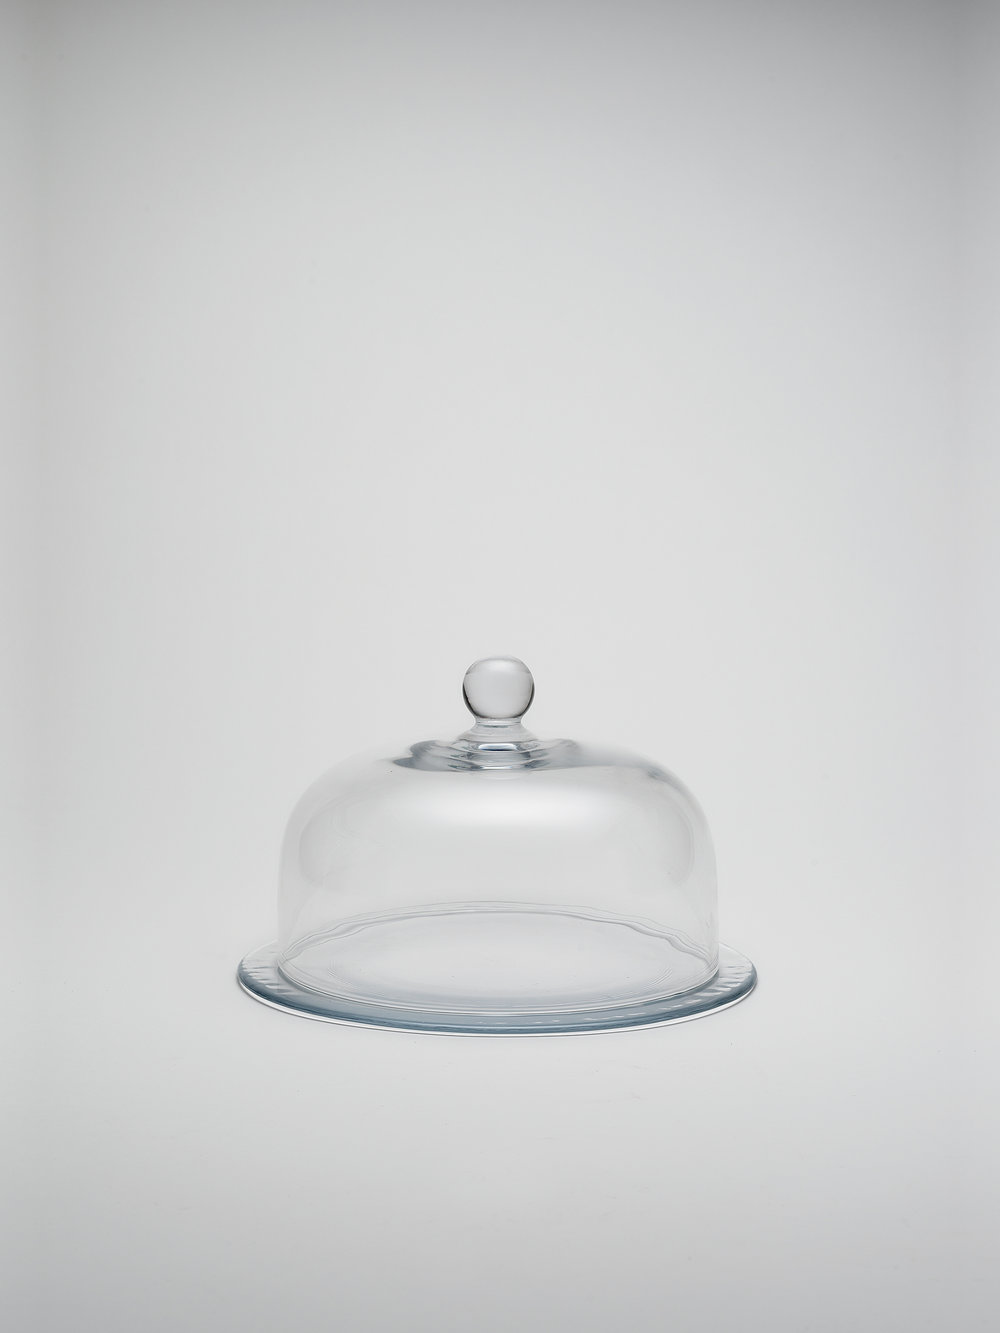 Cake Plate w Dome  $124.00